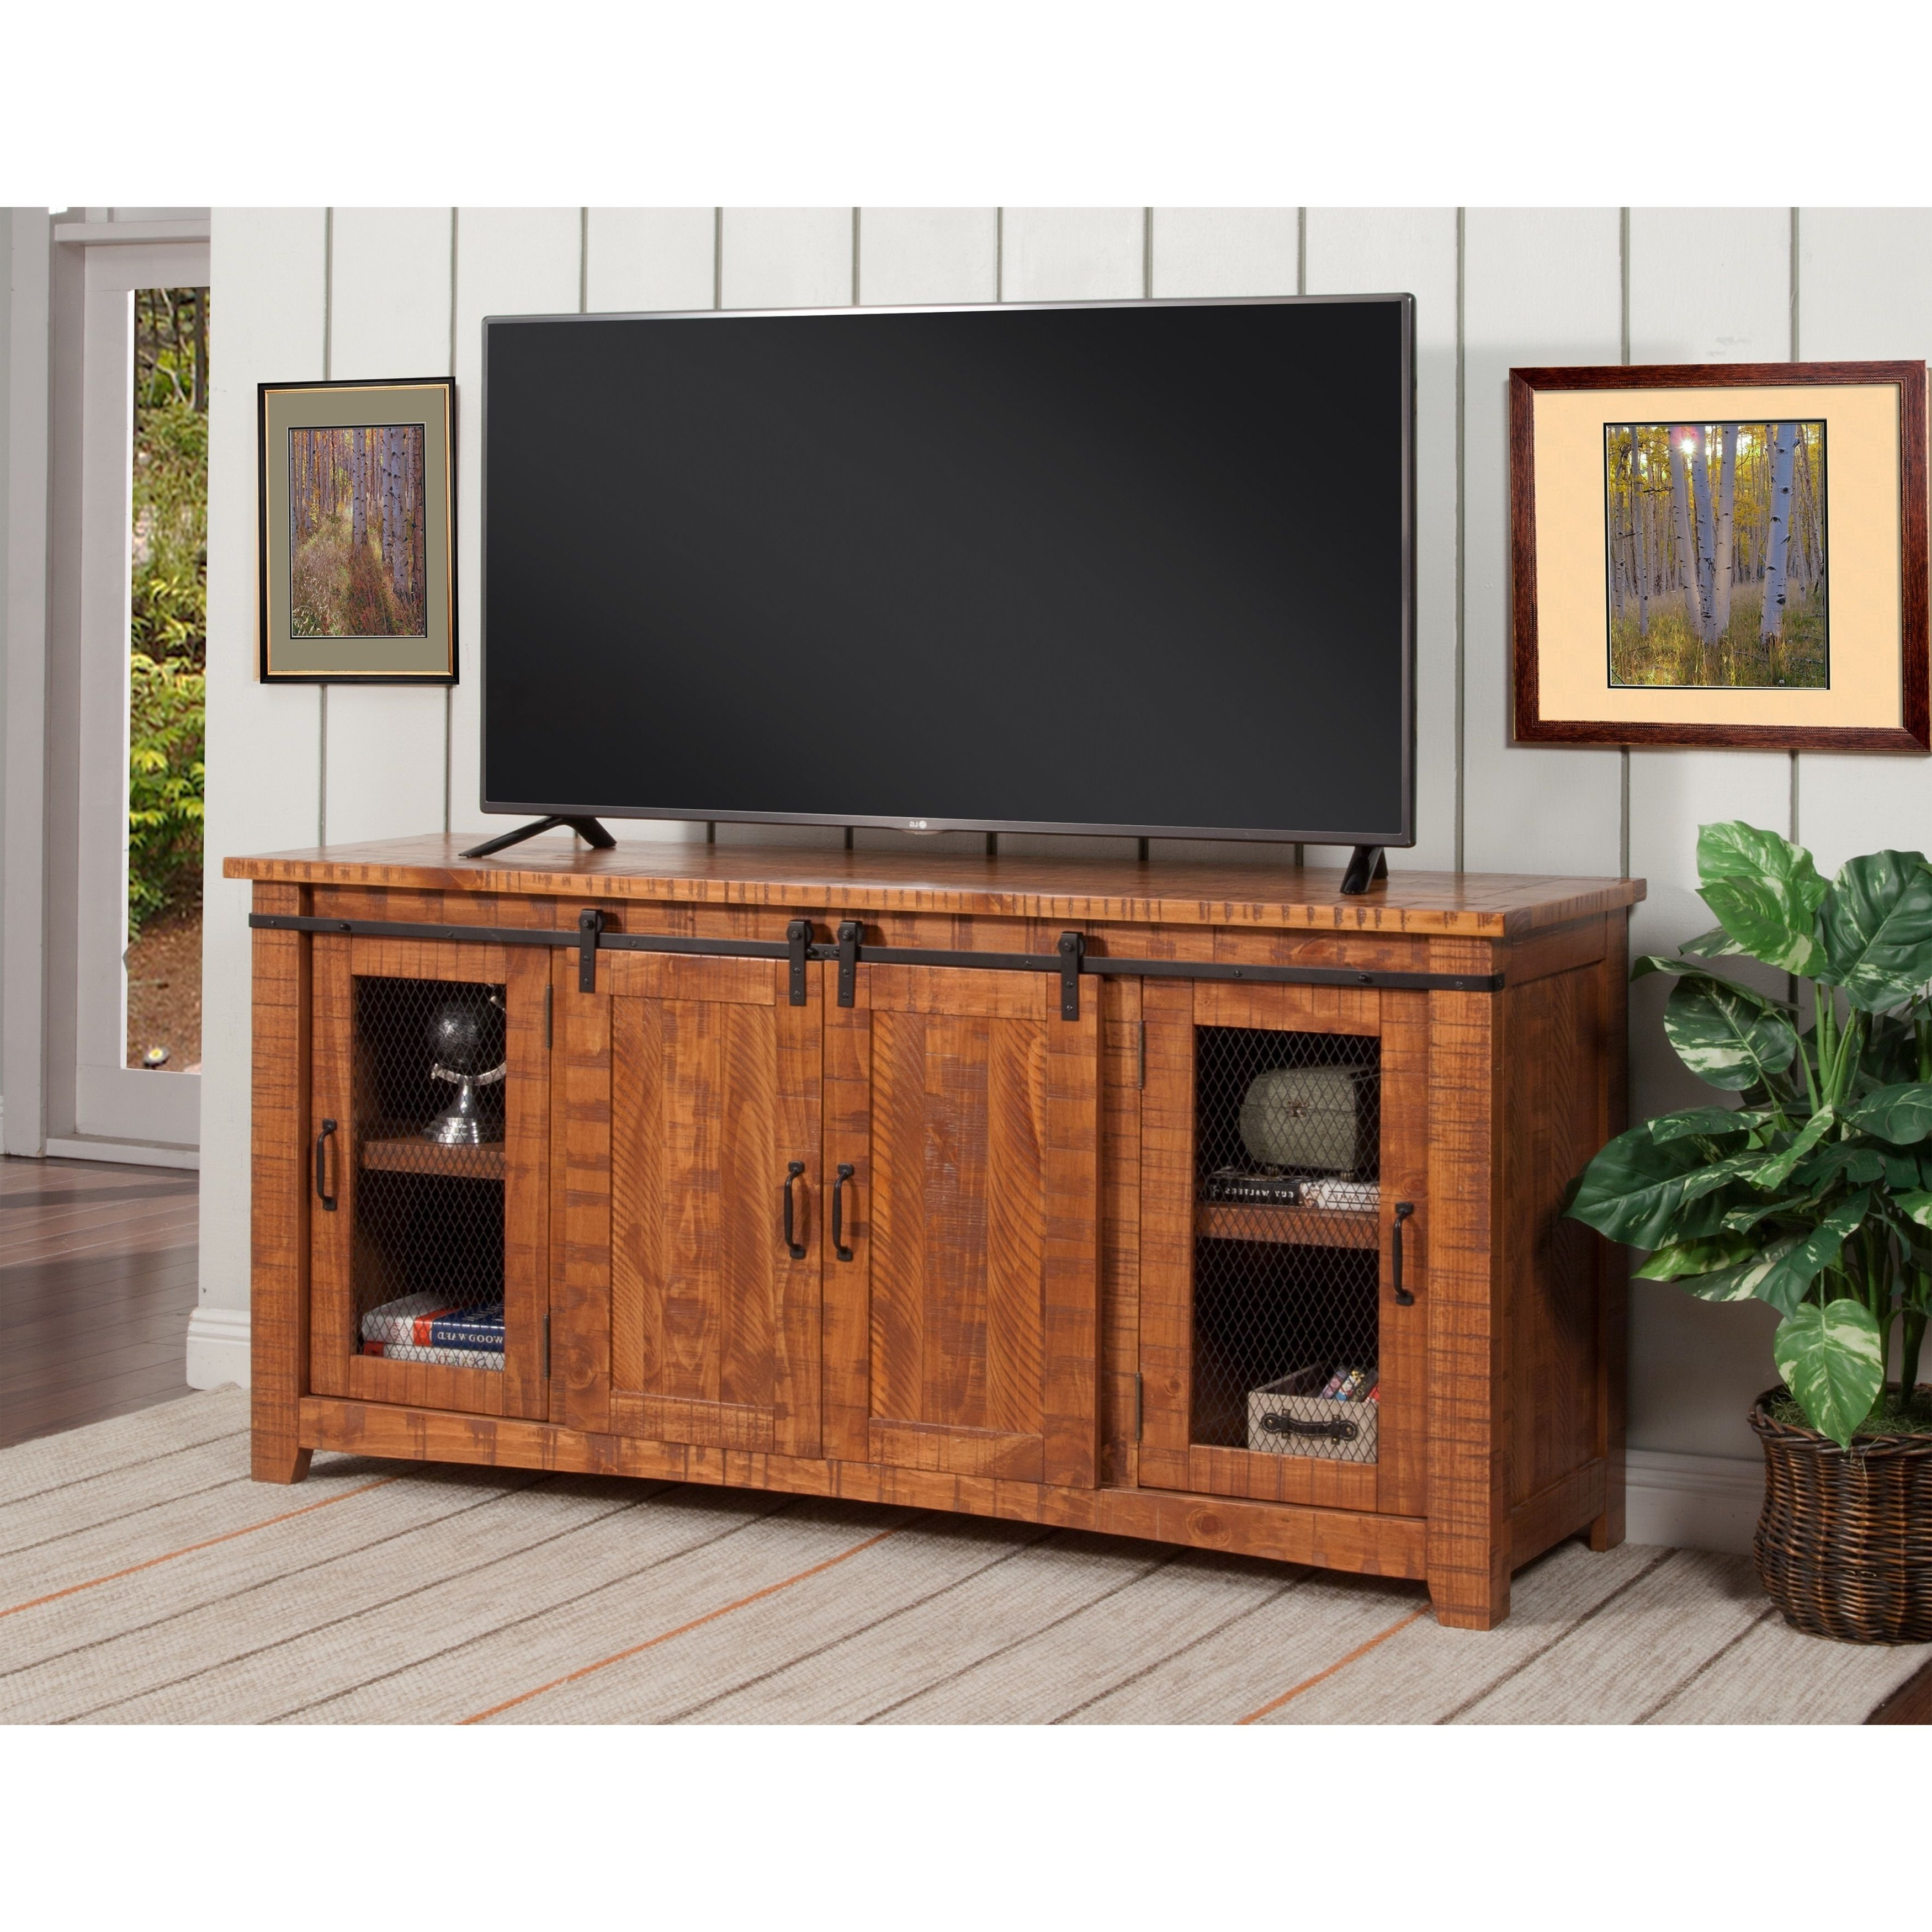 "Martin Svensson Home Omaha 65"" Tv Stand – 65 Inches In Width 